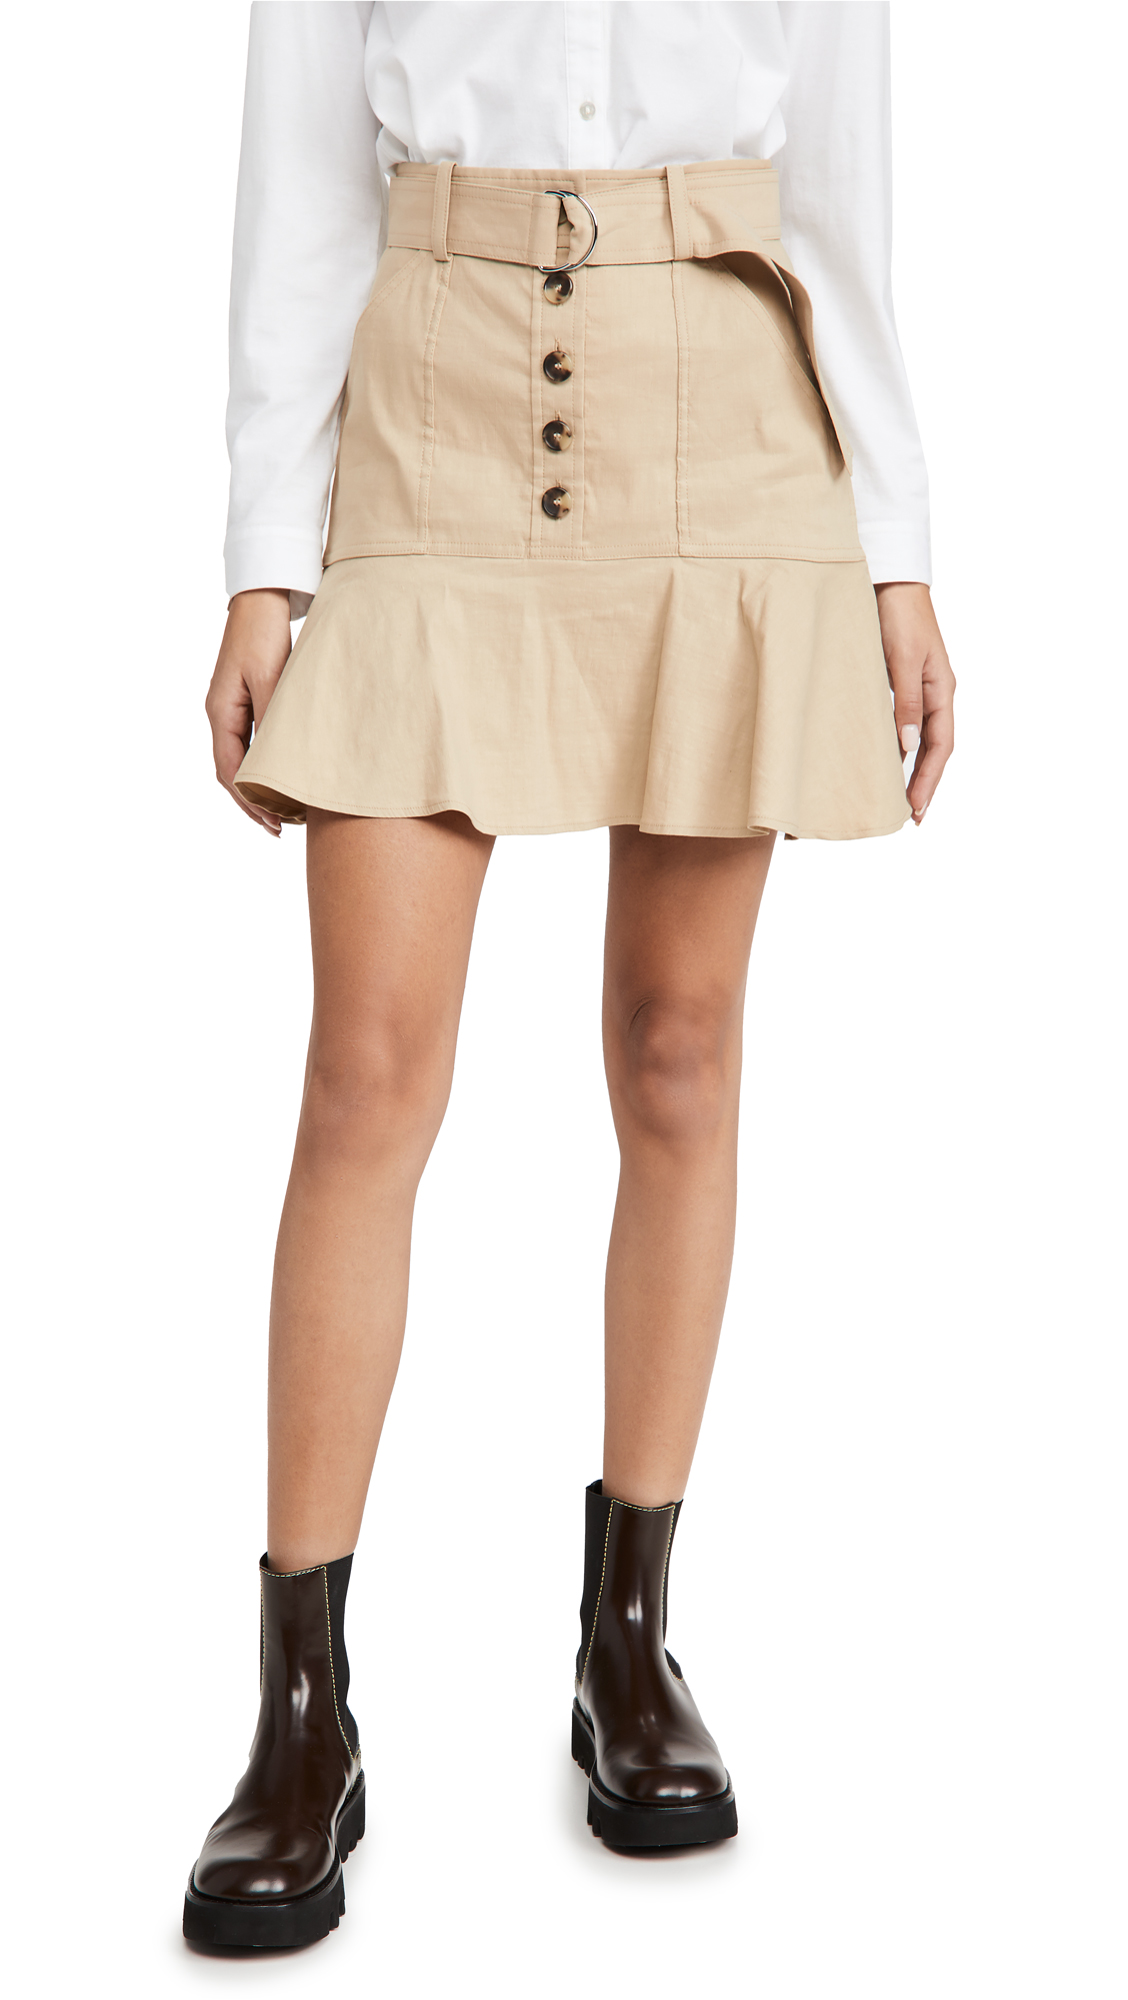 A.l.c MILEY SKIRT